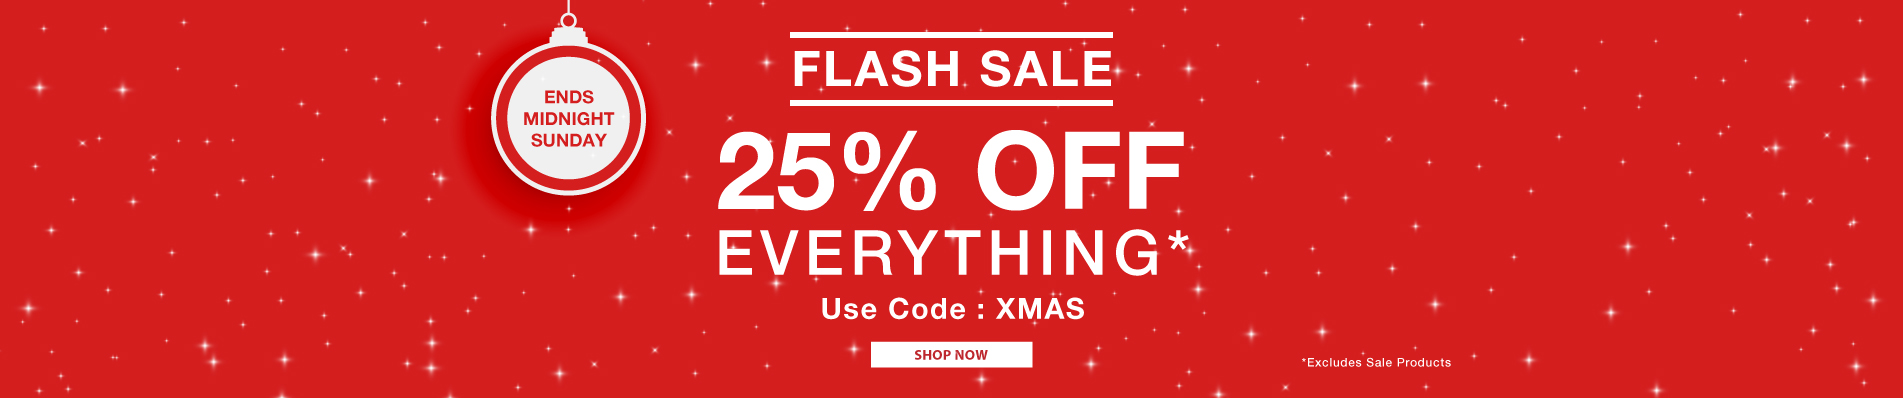 25% off everything full priced